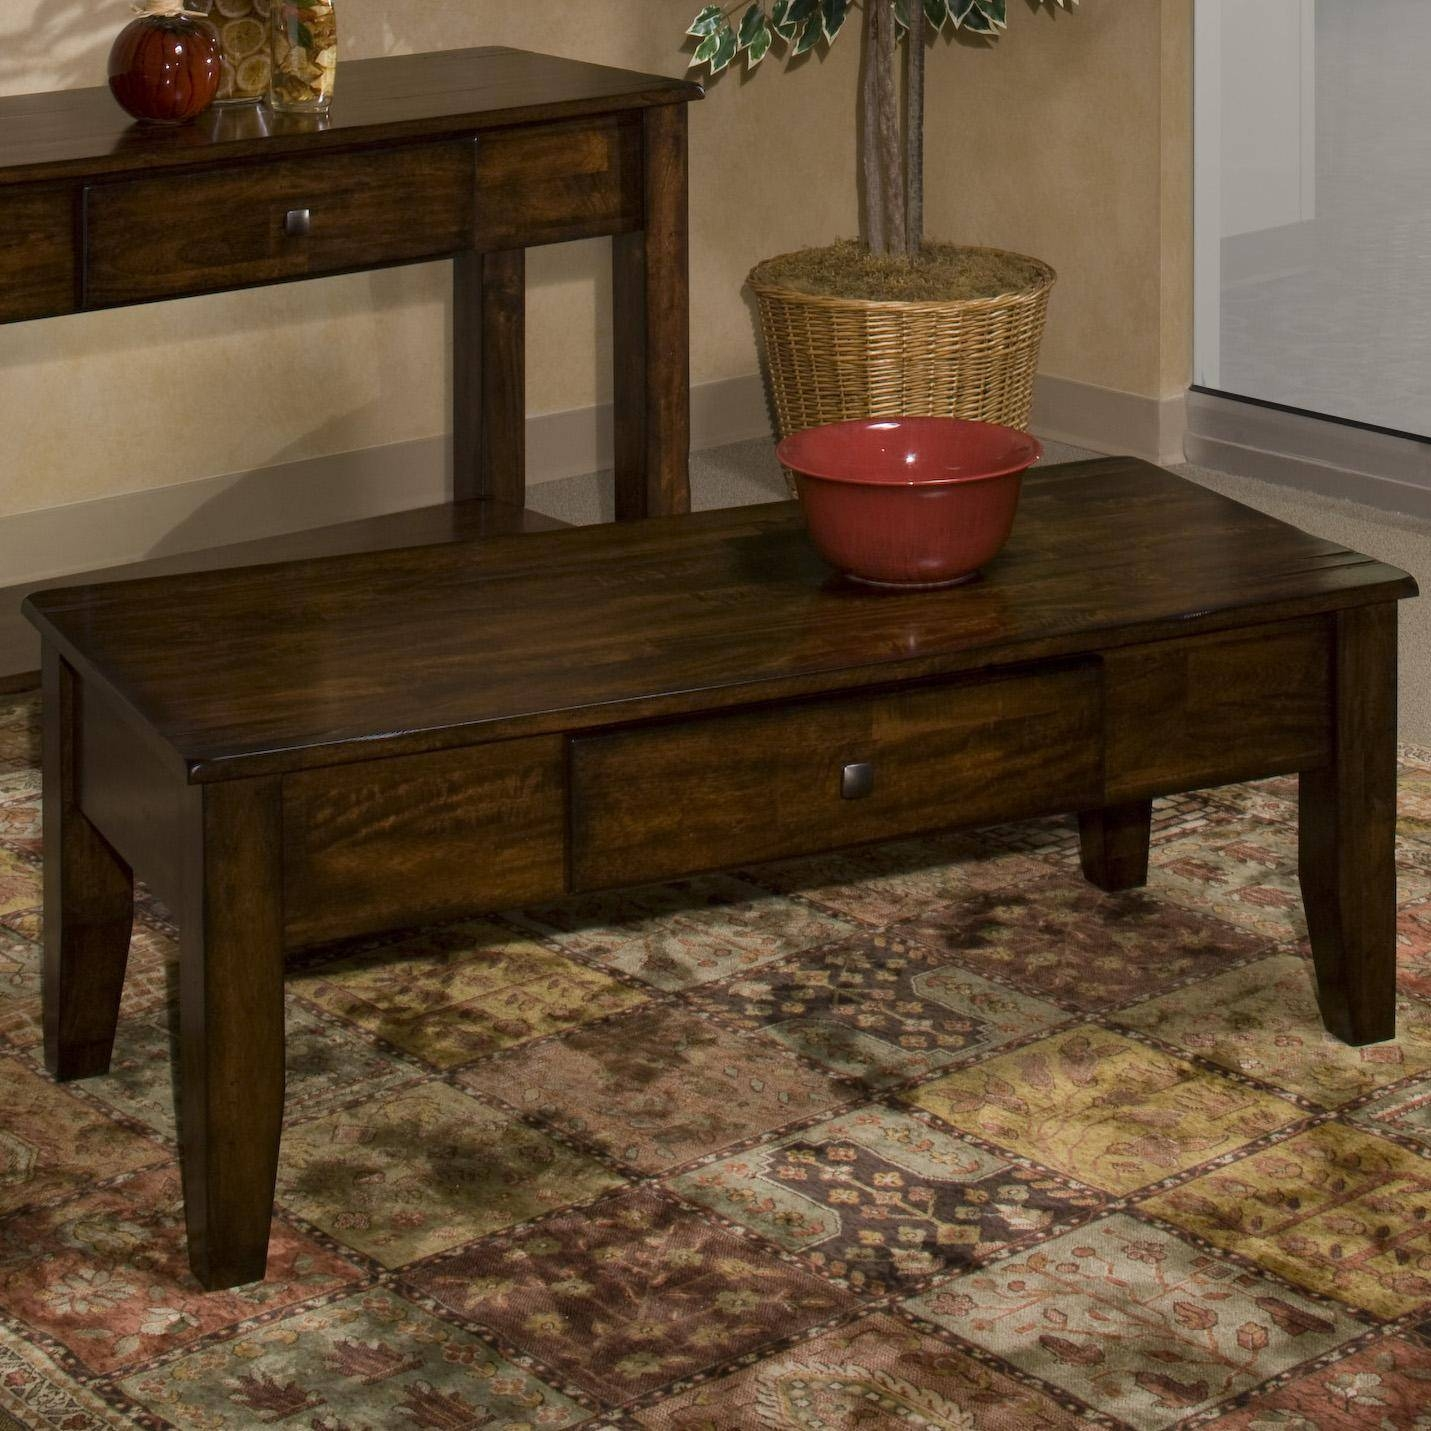 Intercon Kona Mango Wood Coffee Table - Wayside Furniture with regard to Mango Coffee Tables (Image 17 of 30)